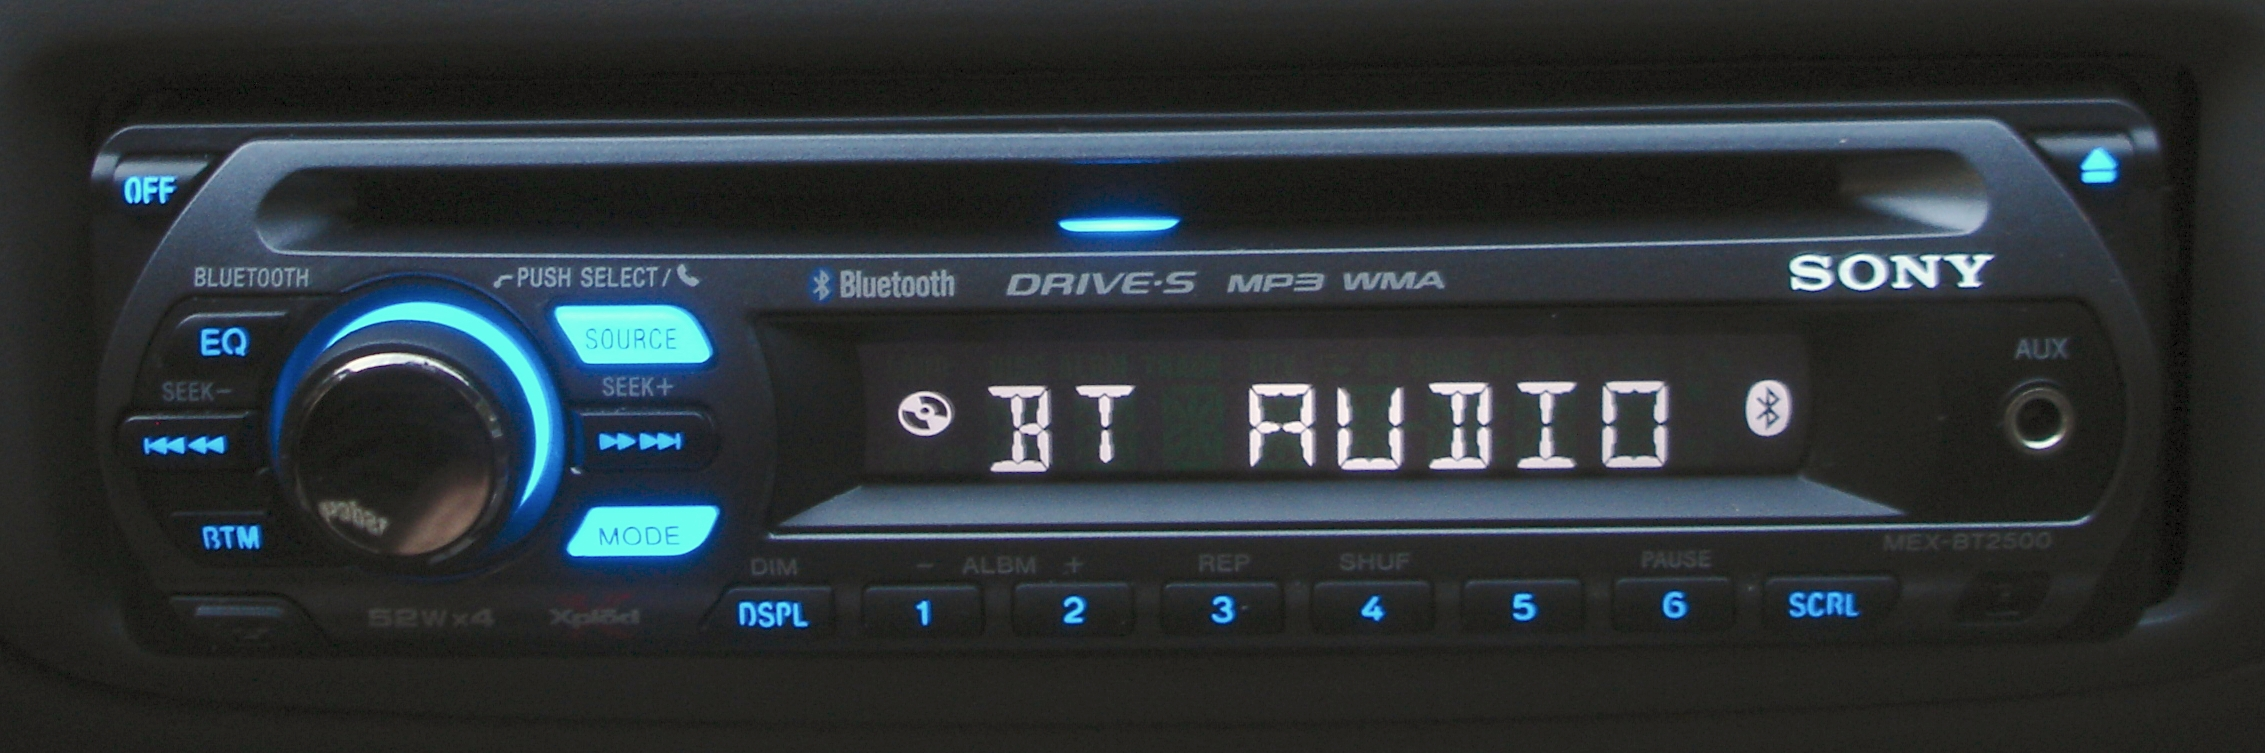 By Sony_MEX-BT2500_Xplod_Bluetooth_stereo_head_unit_illuminated.jpeg: Zuzu derivative work: Pittigrilli [CC-BY-SA-3.0 (http://creativecommons.org/licenses/by-sa/3.0) or GFDL (http://www.gnu.org/copyleft/fdl.html)], via Wikimedia Commons